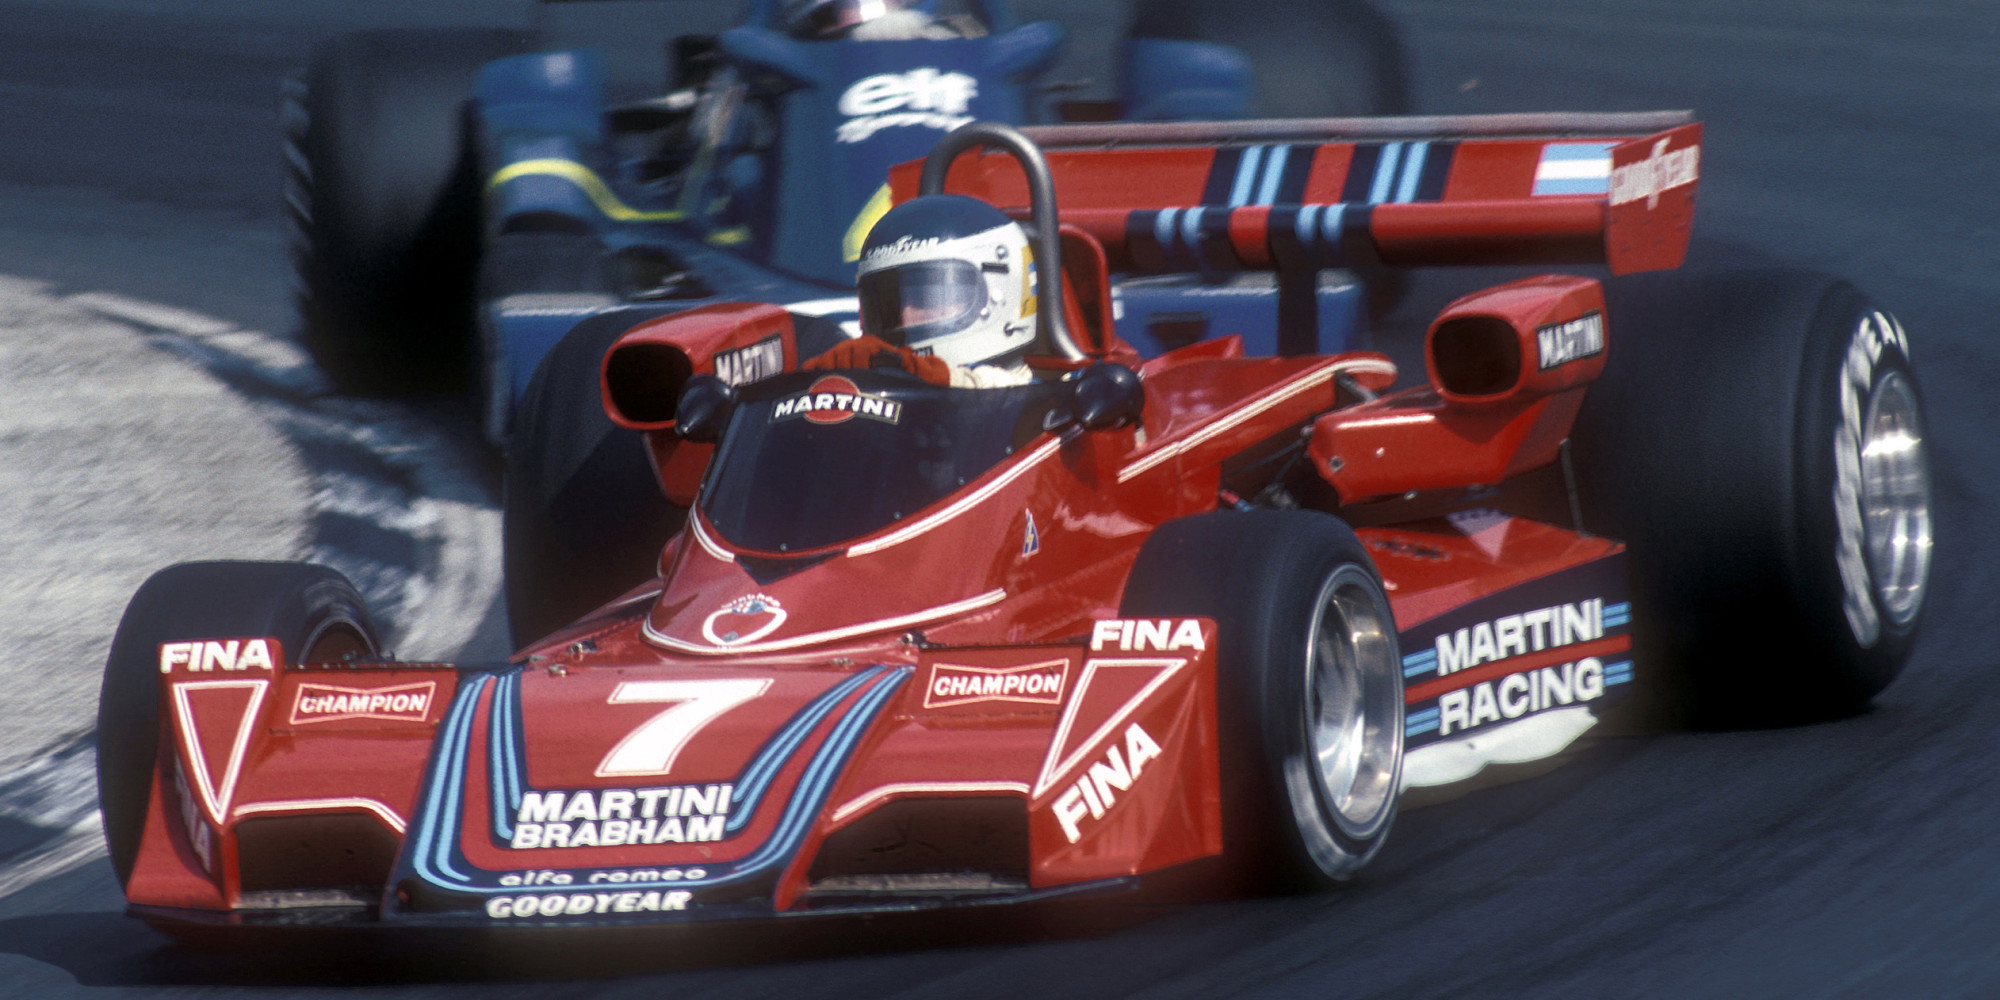 F1: Williams F1 To Be Sponsored By Martini: F1's Greatest